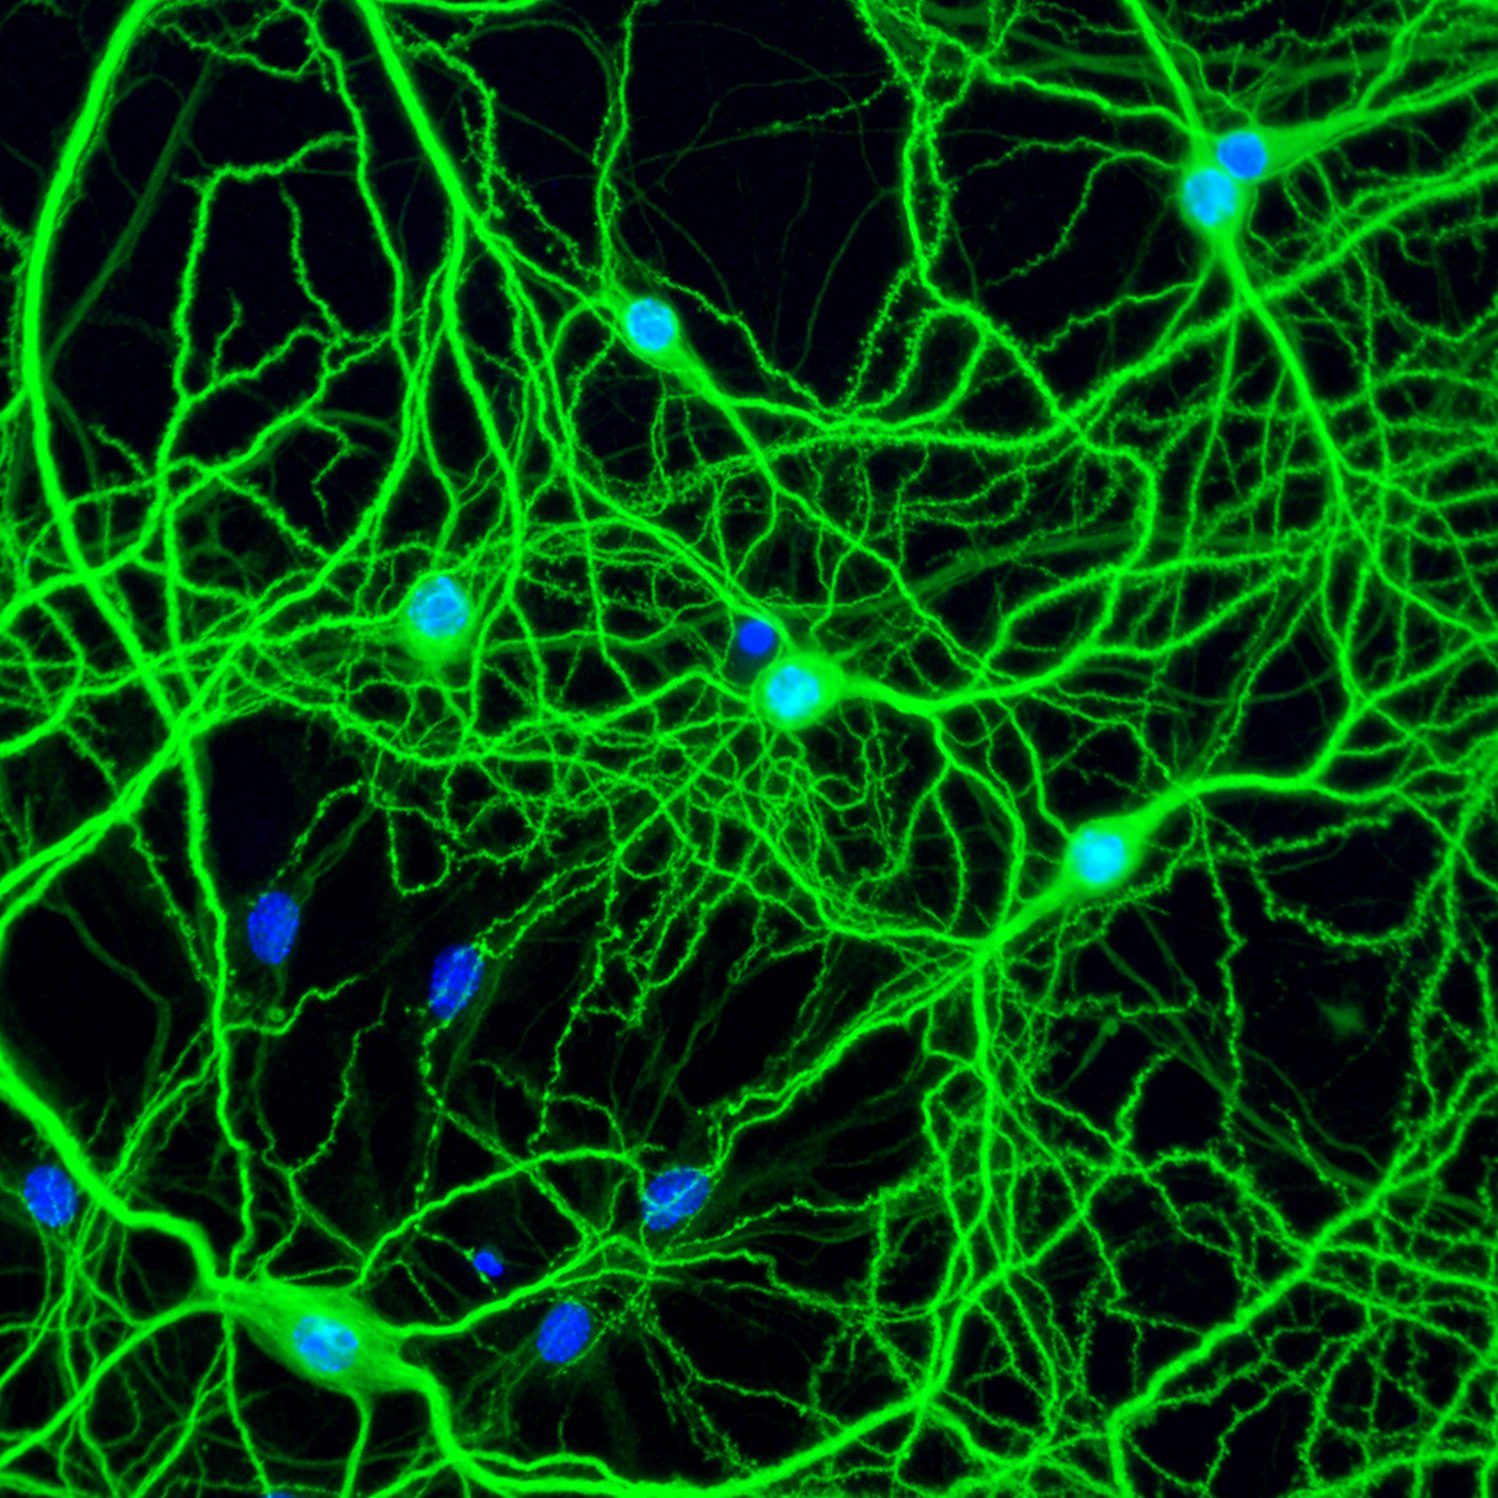 Primary neurons